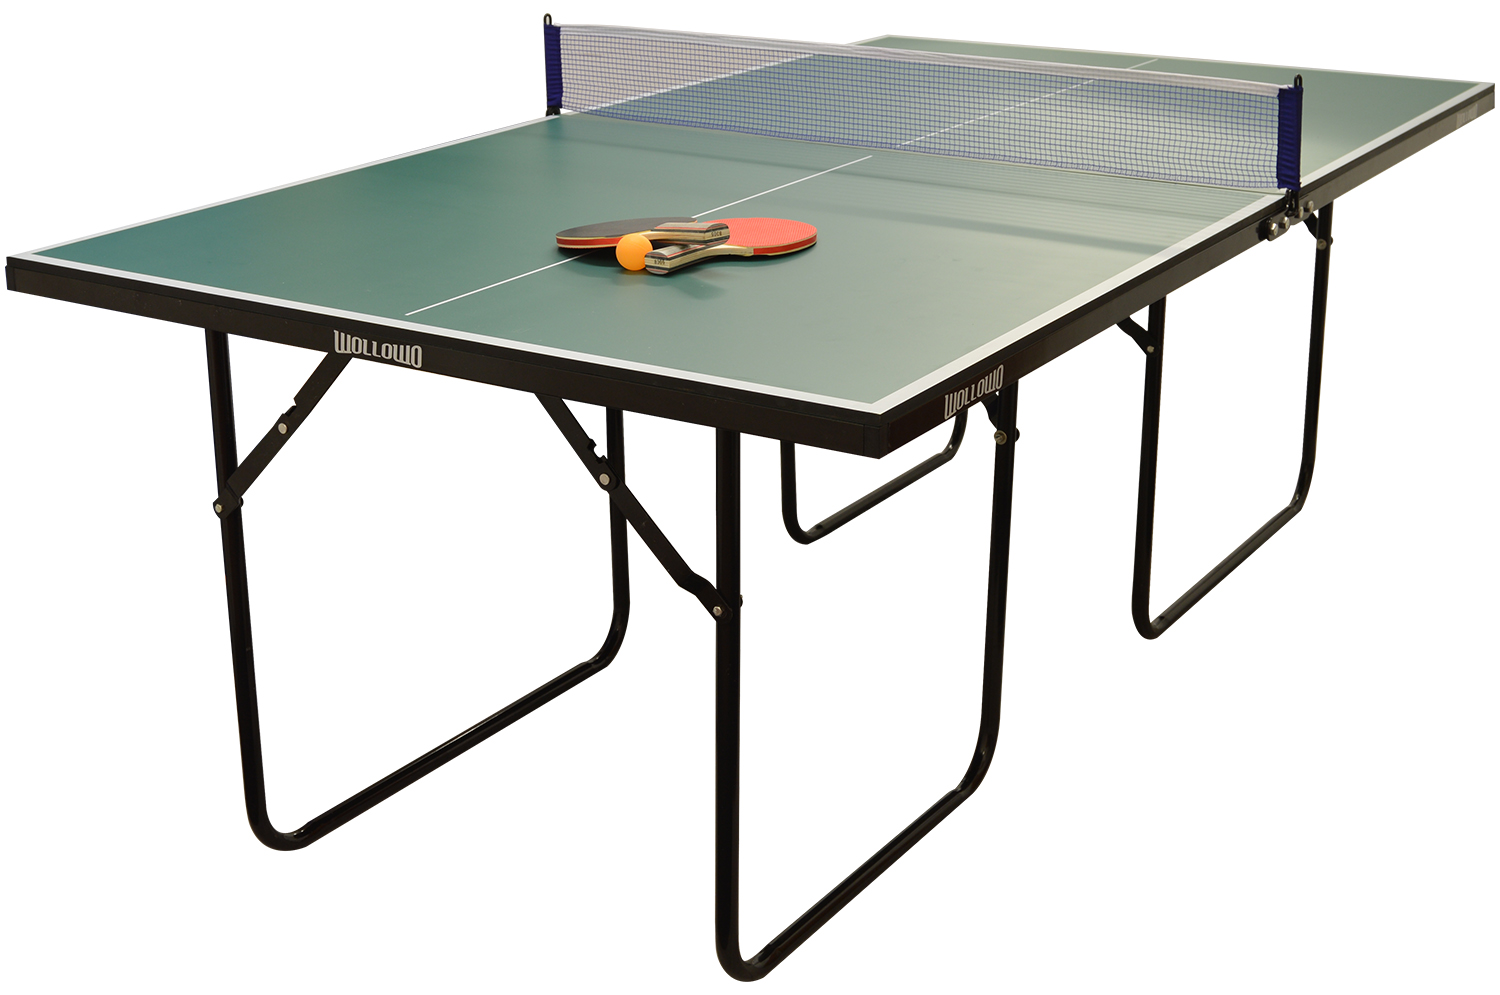 Wollowo 3/4 Size Table Tennis Table